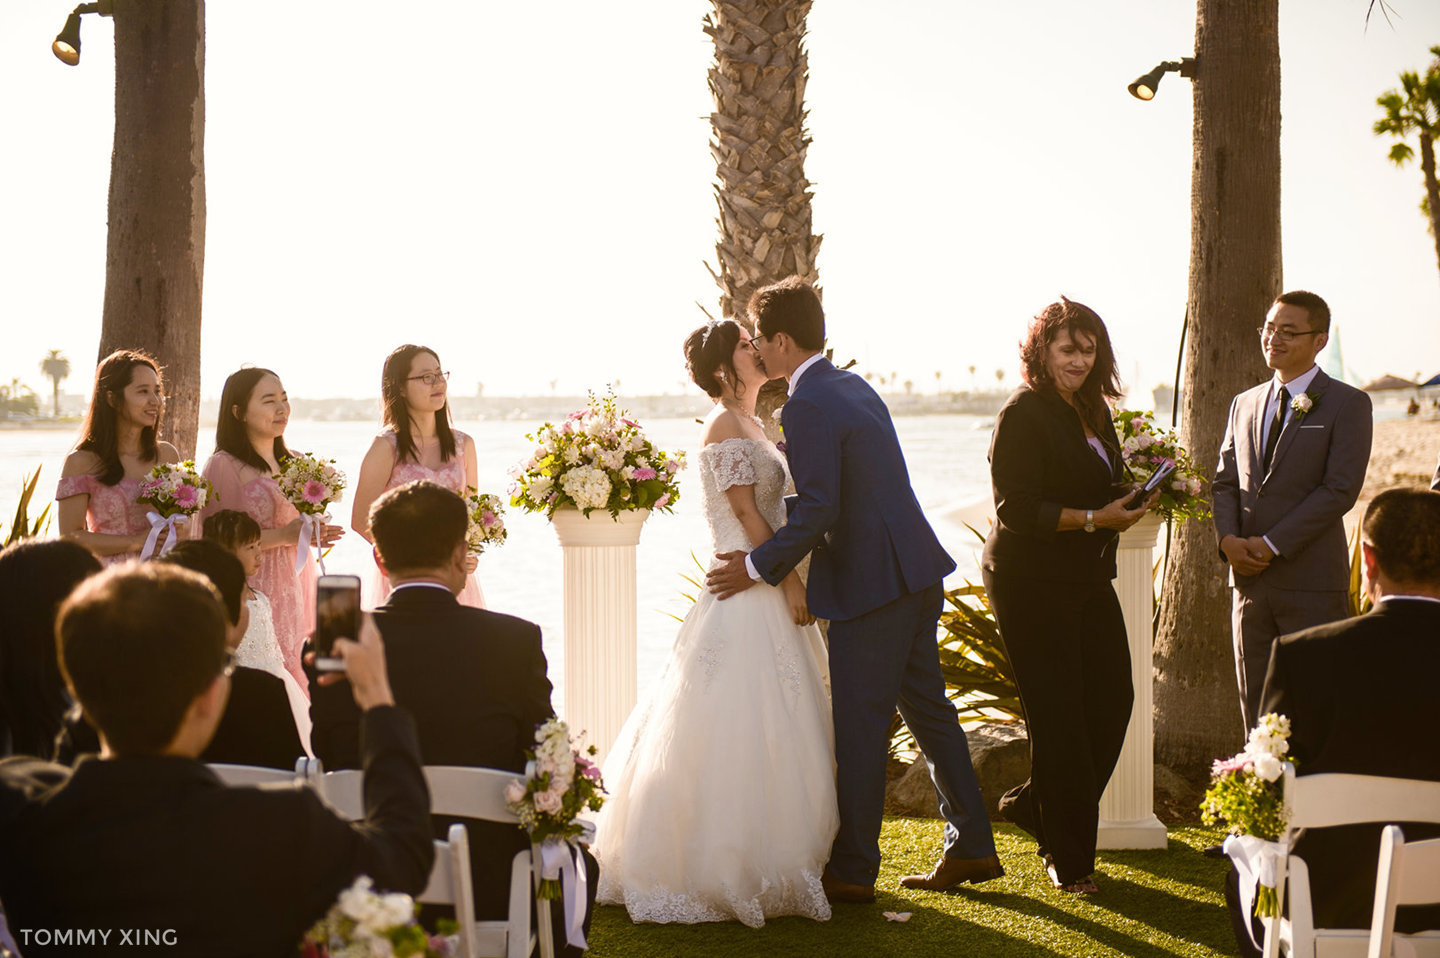 Paradise Point Resort Wedding Xiaolu & Bin San Diego 圣地亚哥婚礼摄影跟拍 Tommy Xing Photography 洛杉矶婚礼婚纱照摄影师 164.jpg